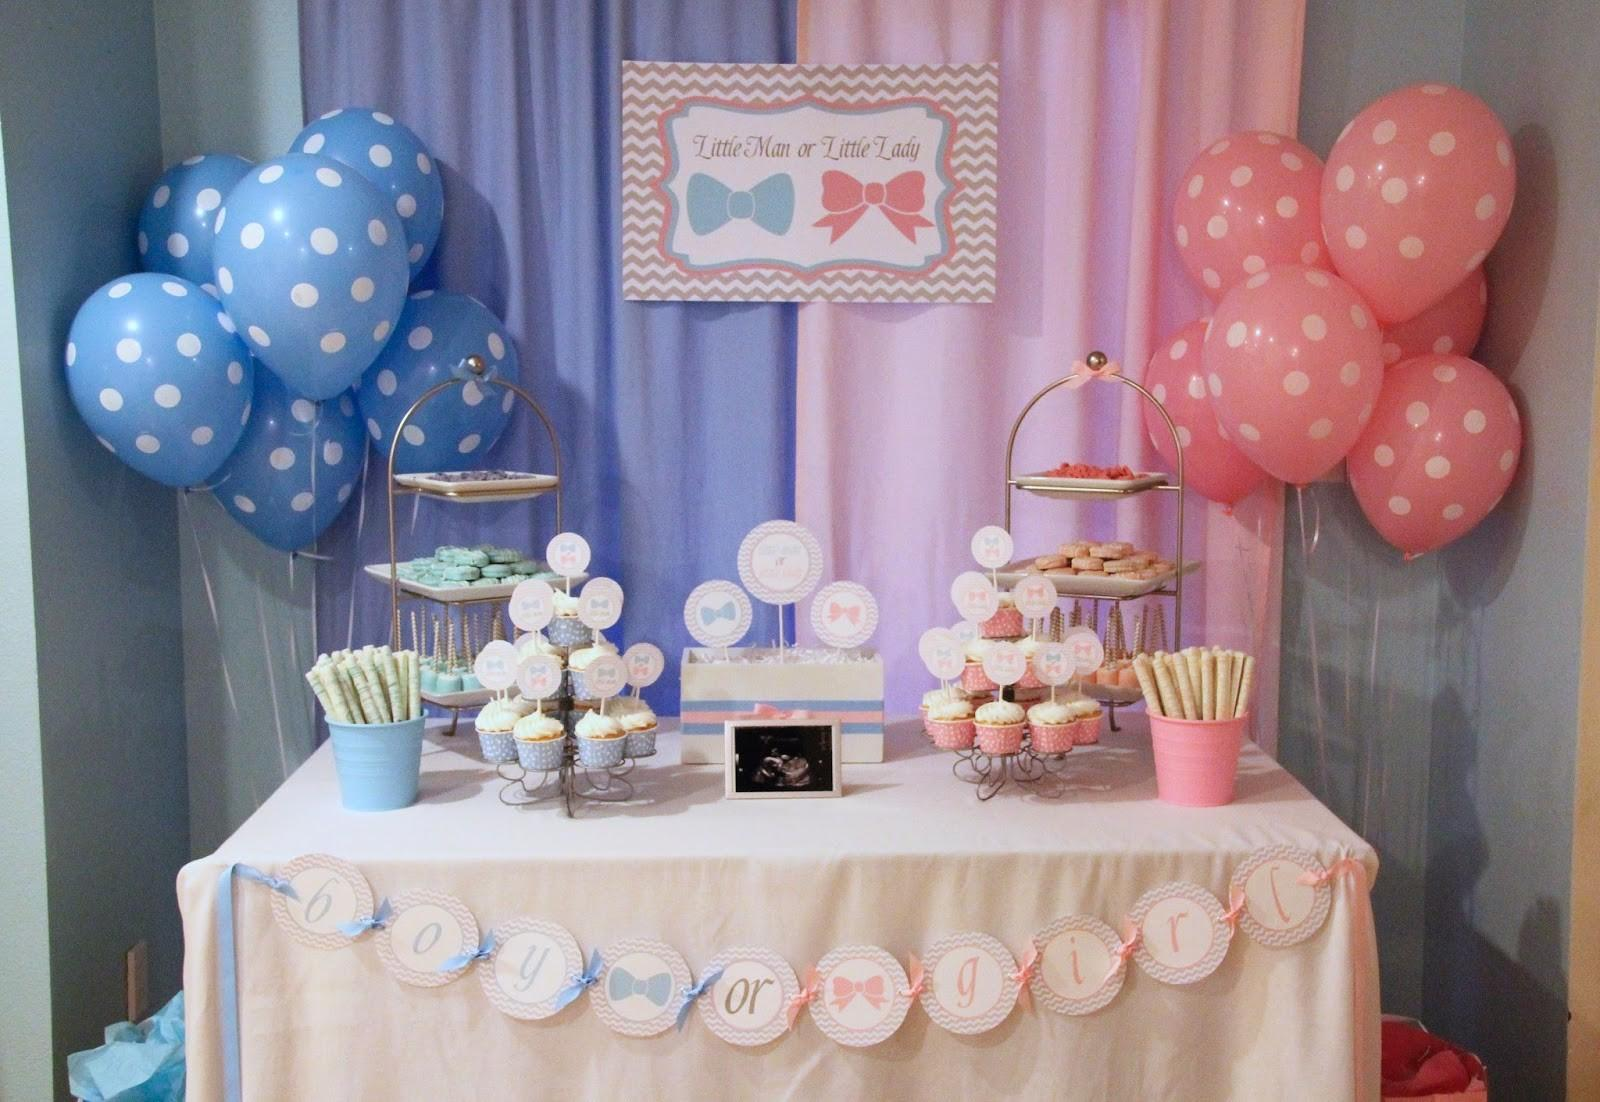 Creations Gender Reveal Party Little Man Lady